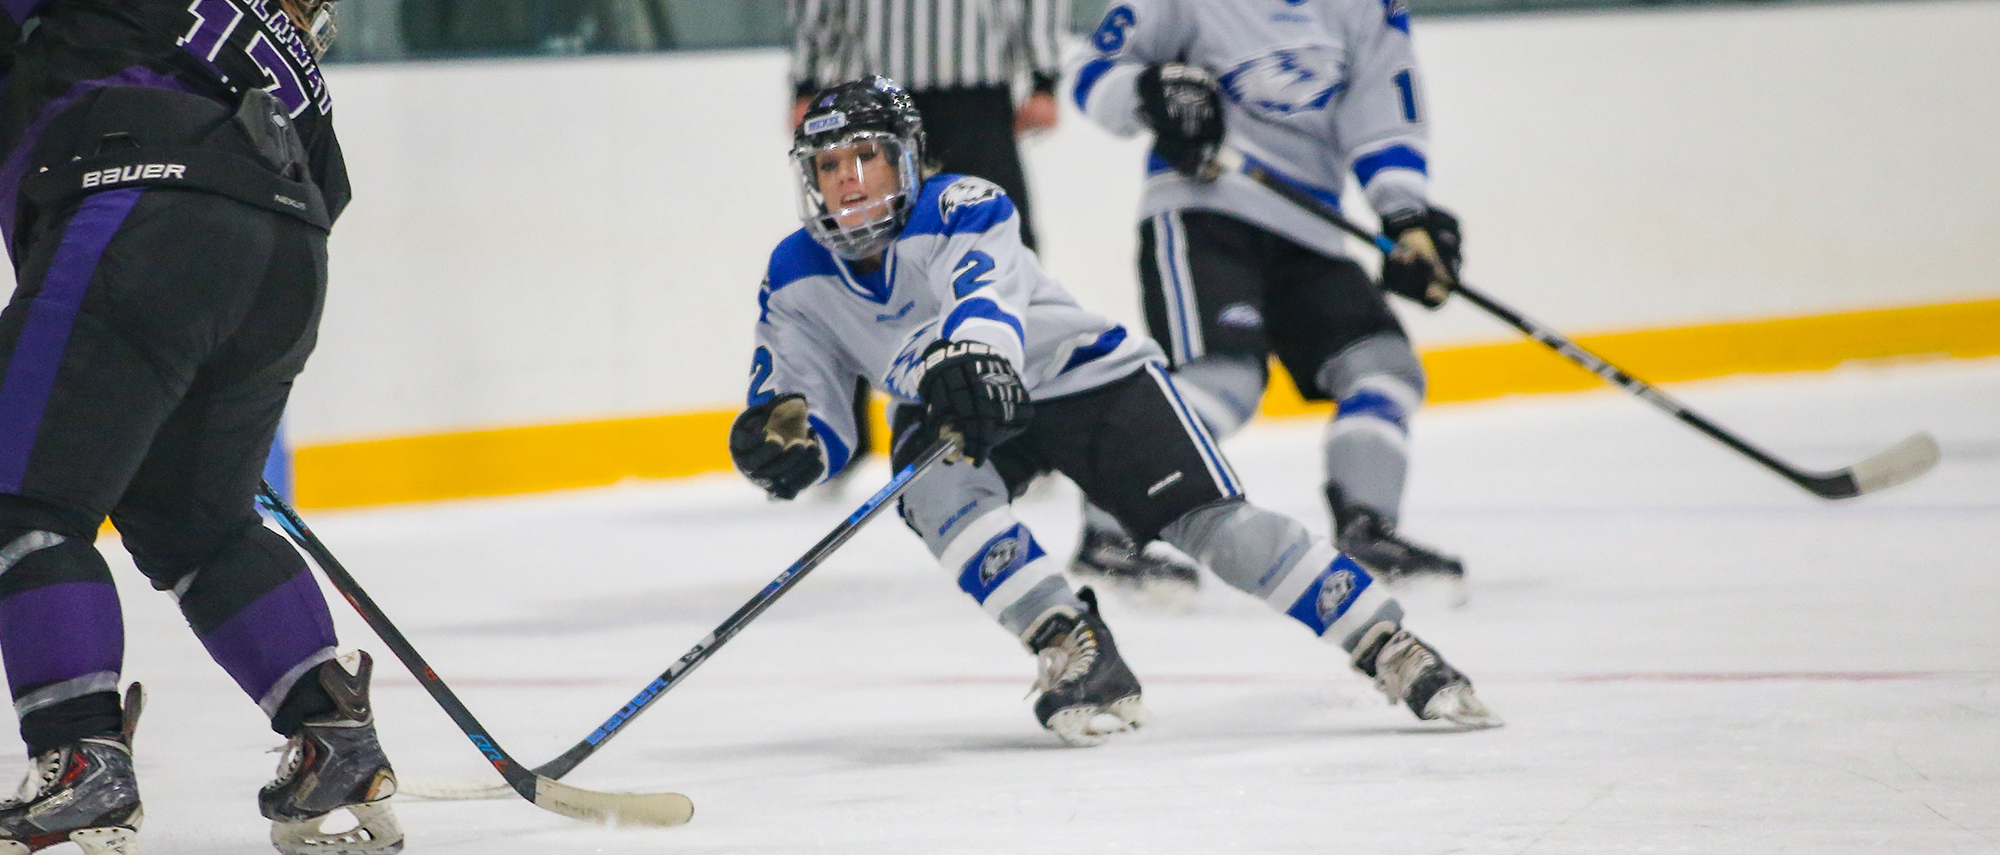 Michaela Martin and the women's ice hockey team lost to Salem State on Saturday